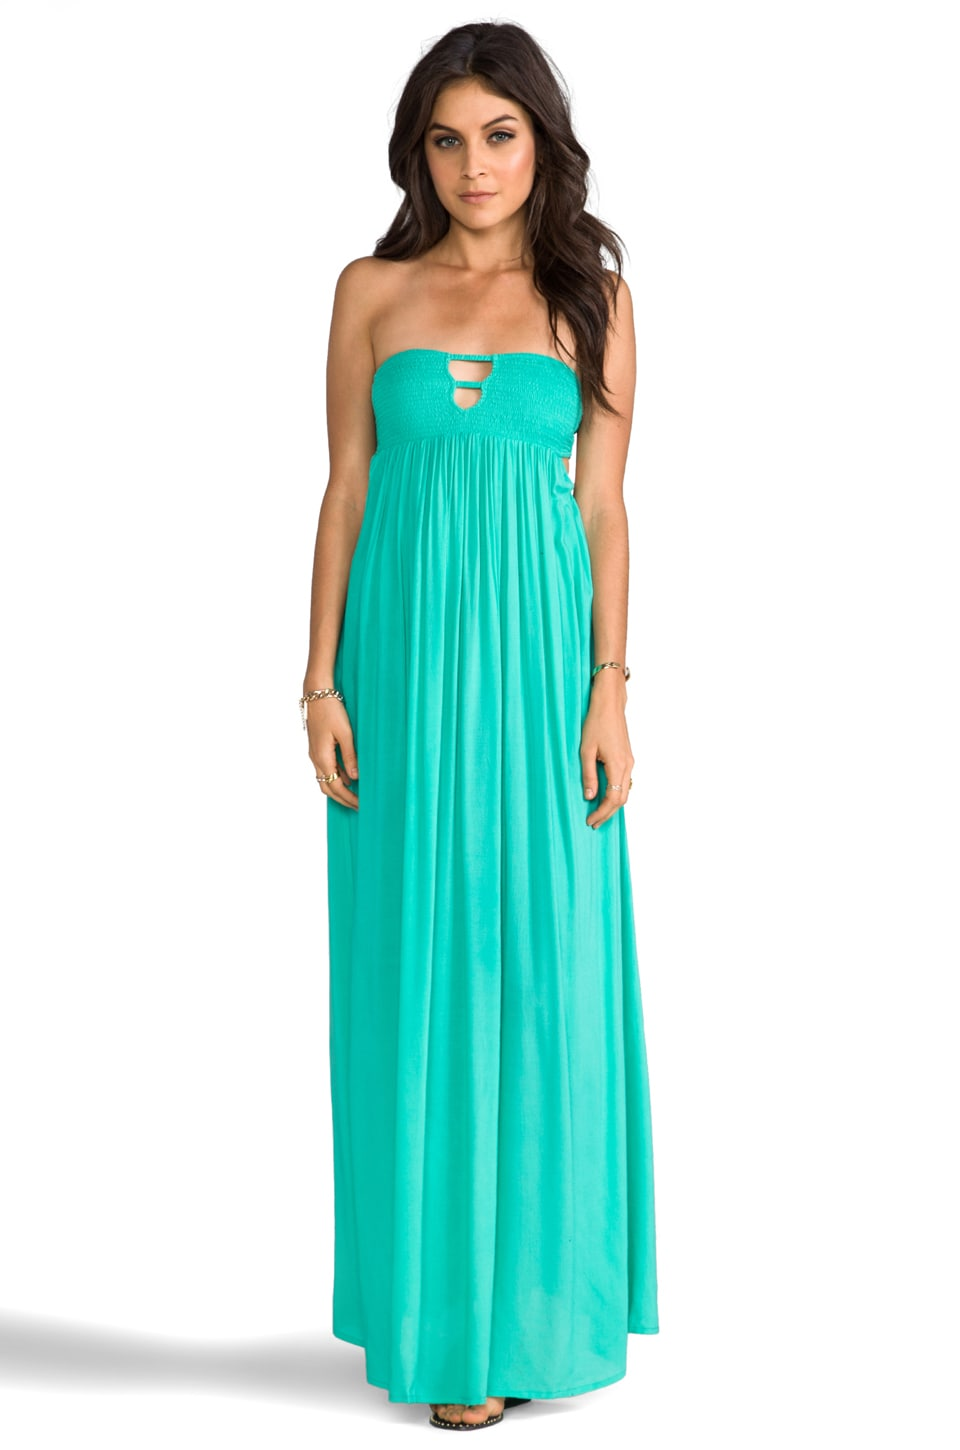 Indah Flamingo Rayon Crepe Smocked Bandeau Maxi Dress in Aqua